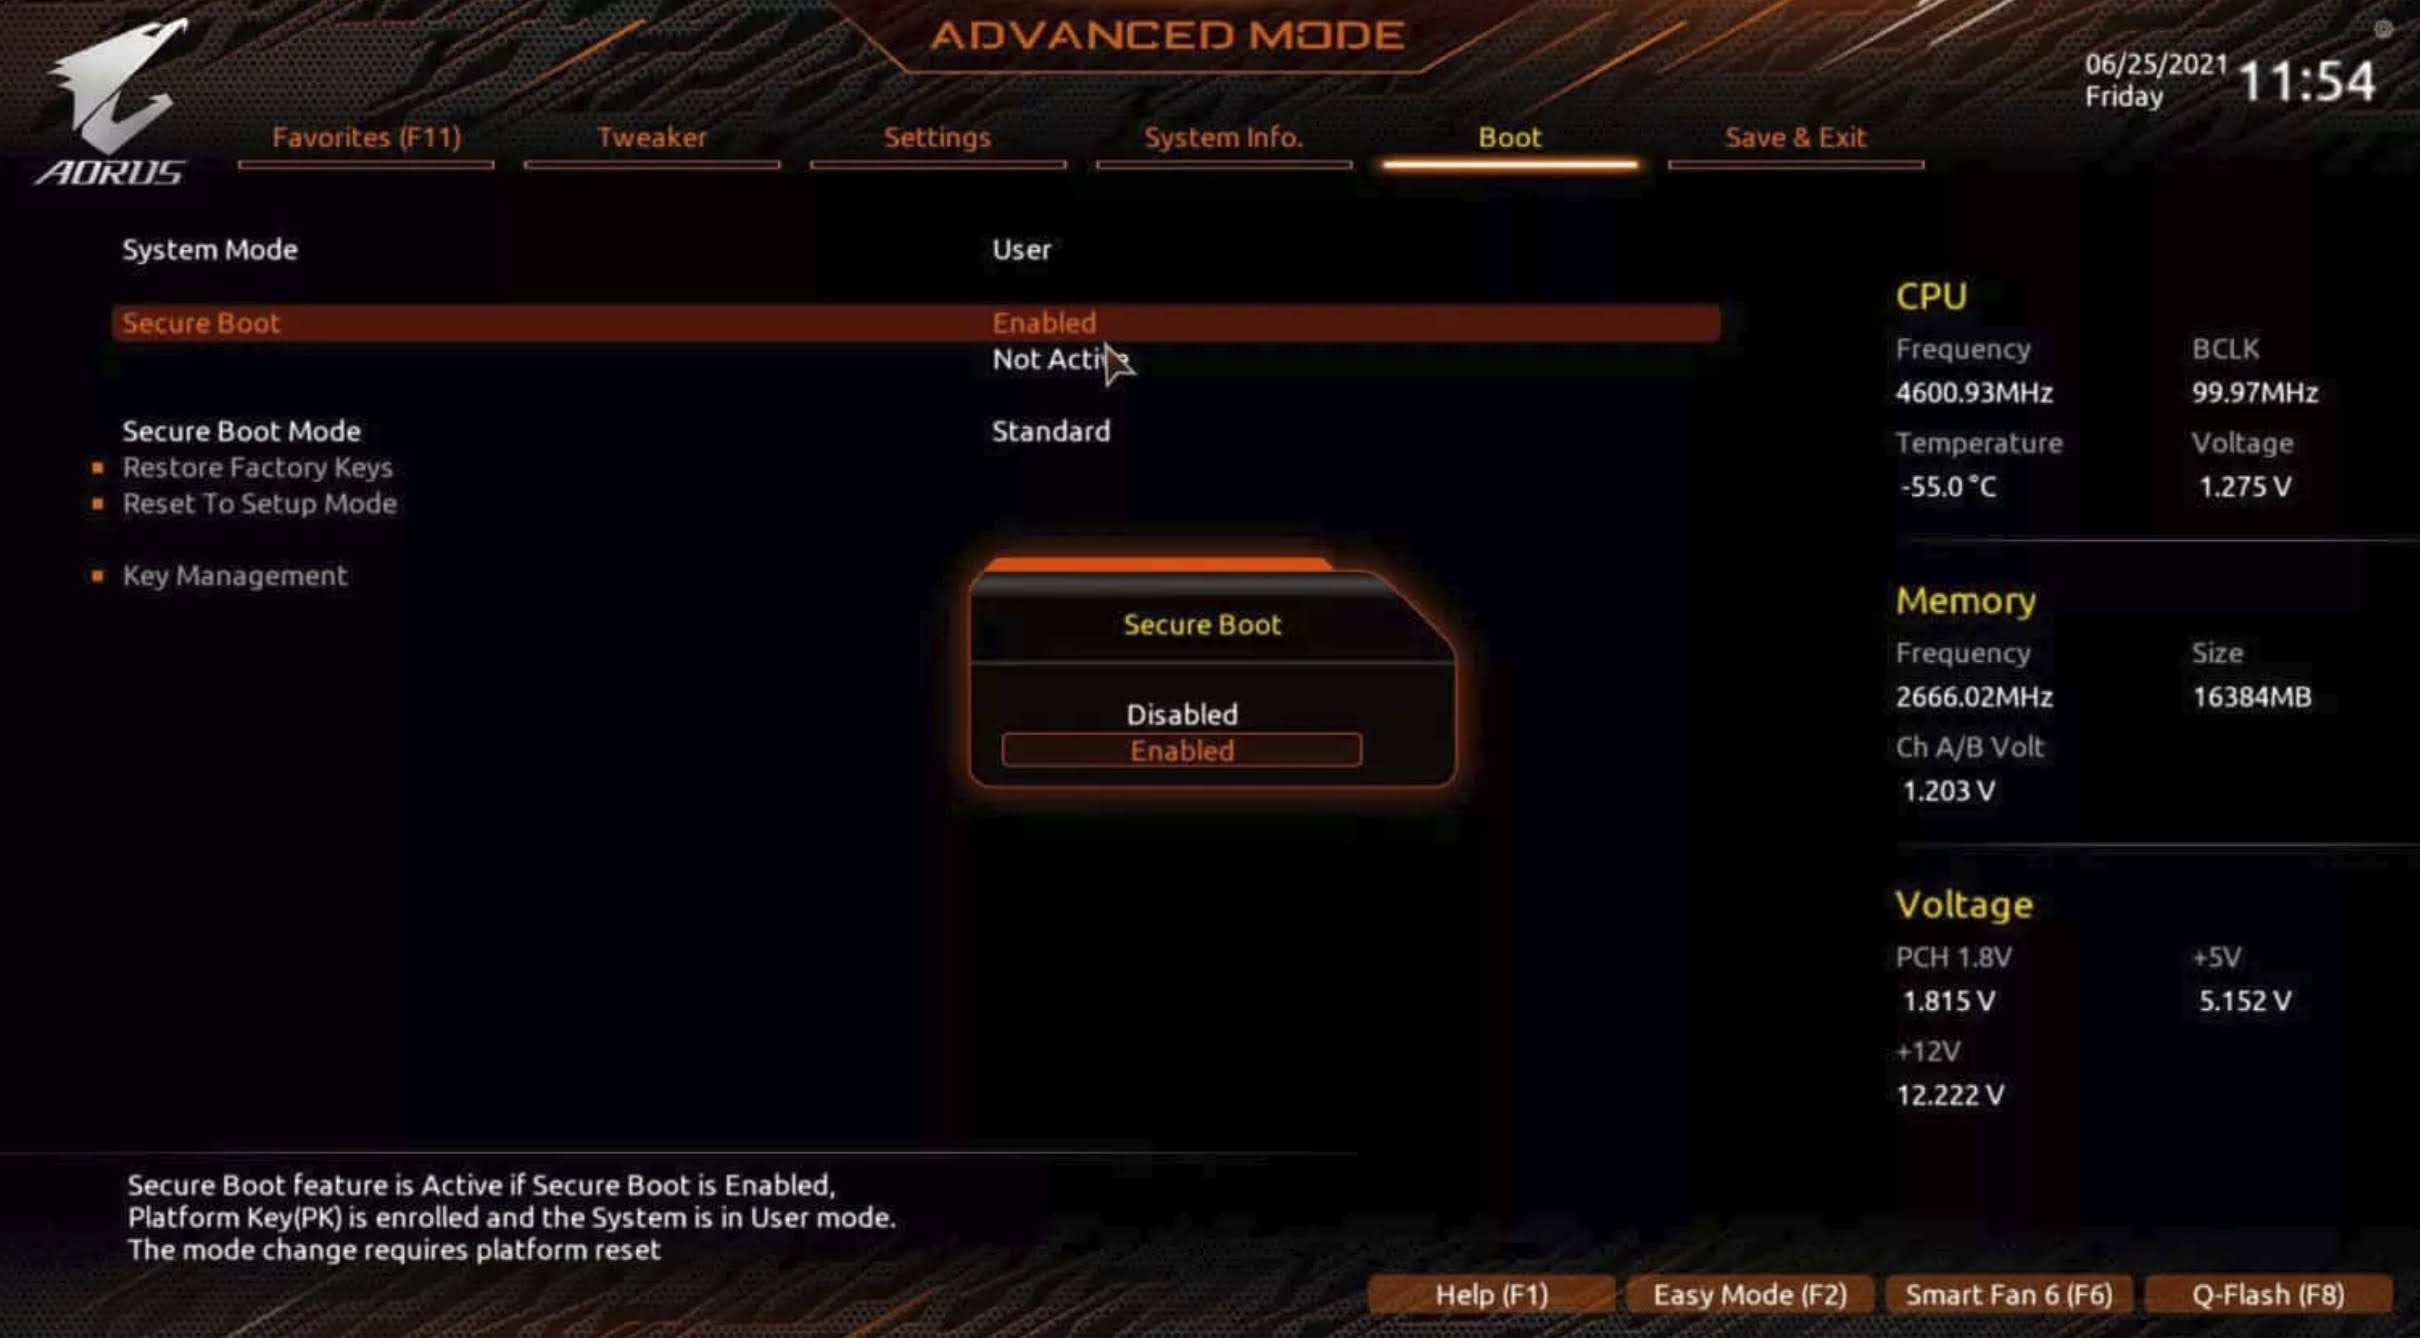 Enable TPM 2.0 for GIGABYTE motherboard using AORUS: Click the Secure boot option and change it to Enabled.